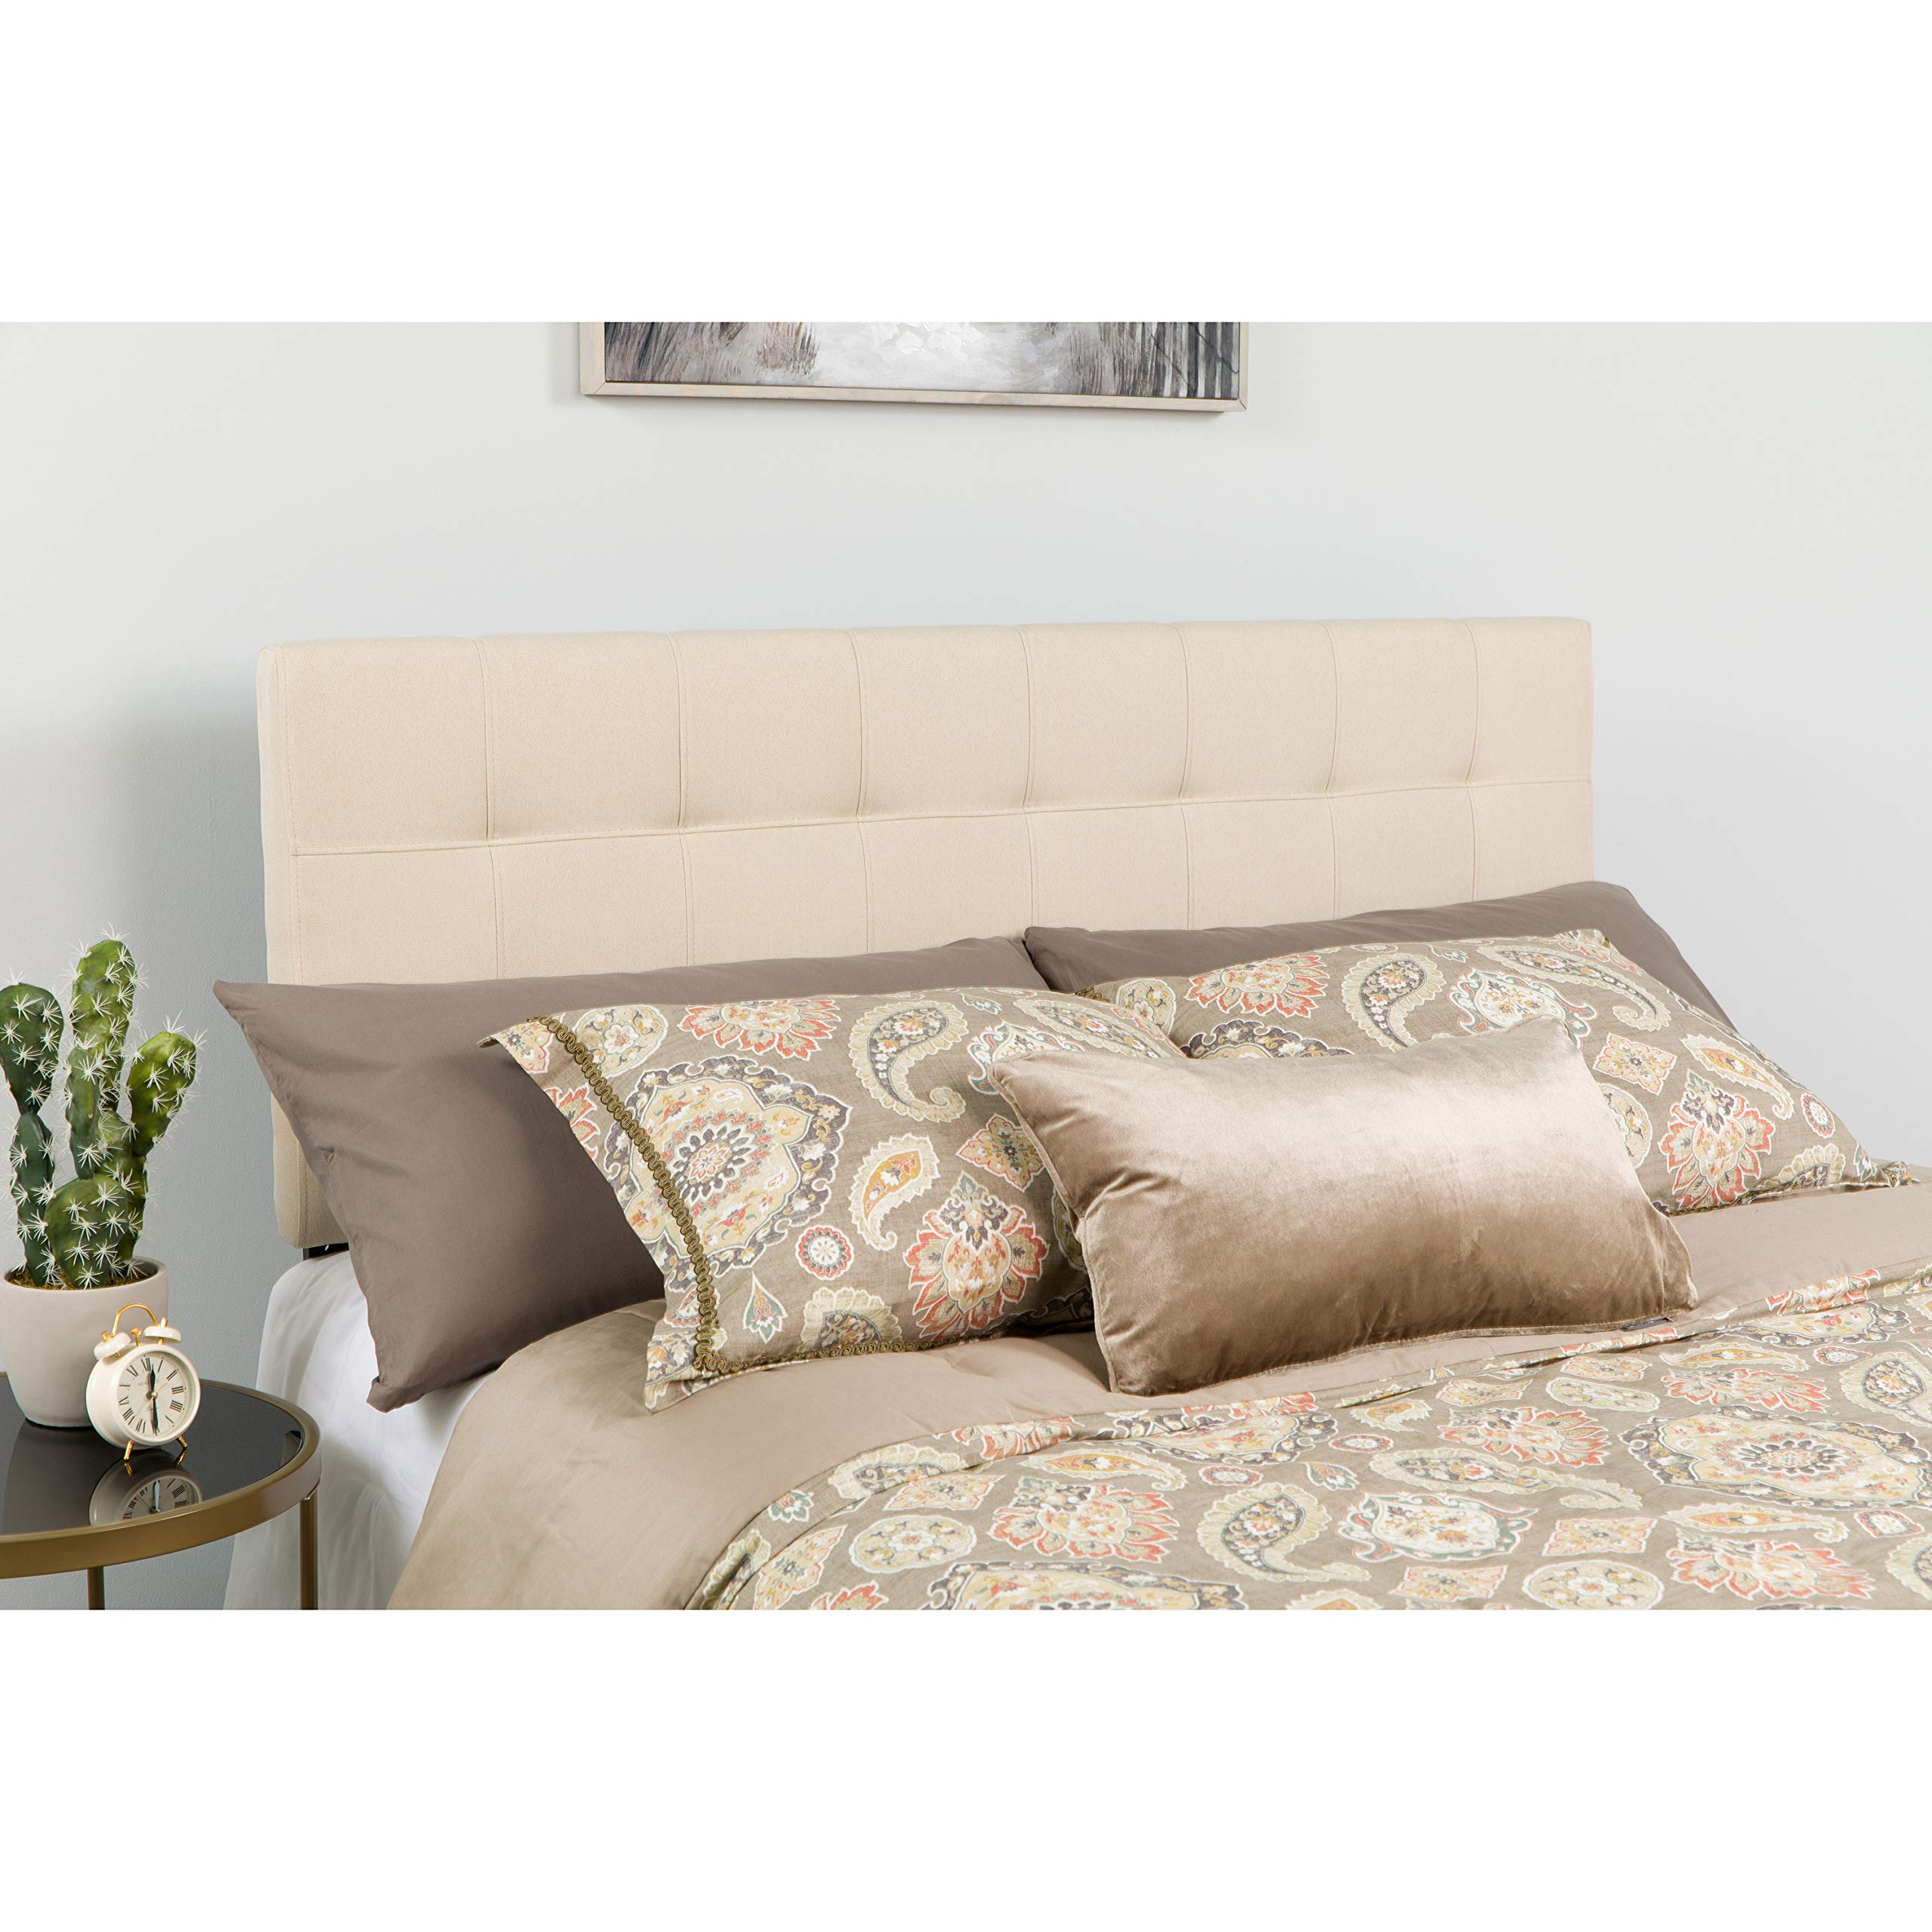 Flash Furniture Bedford Tufted Upholstered Twin Size Headboard in Beige Fabric